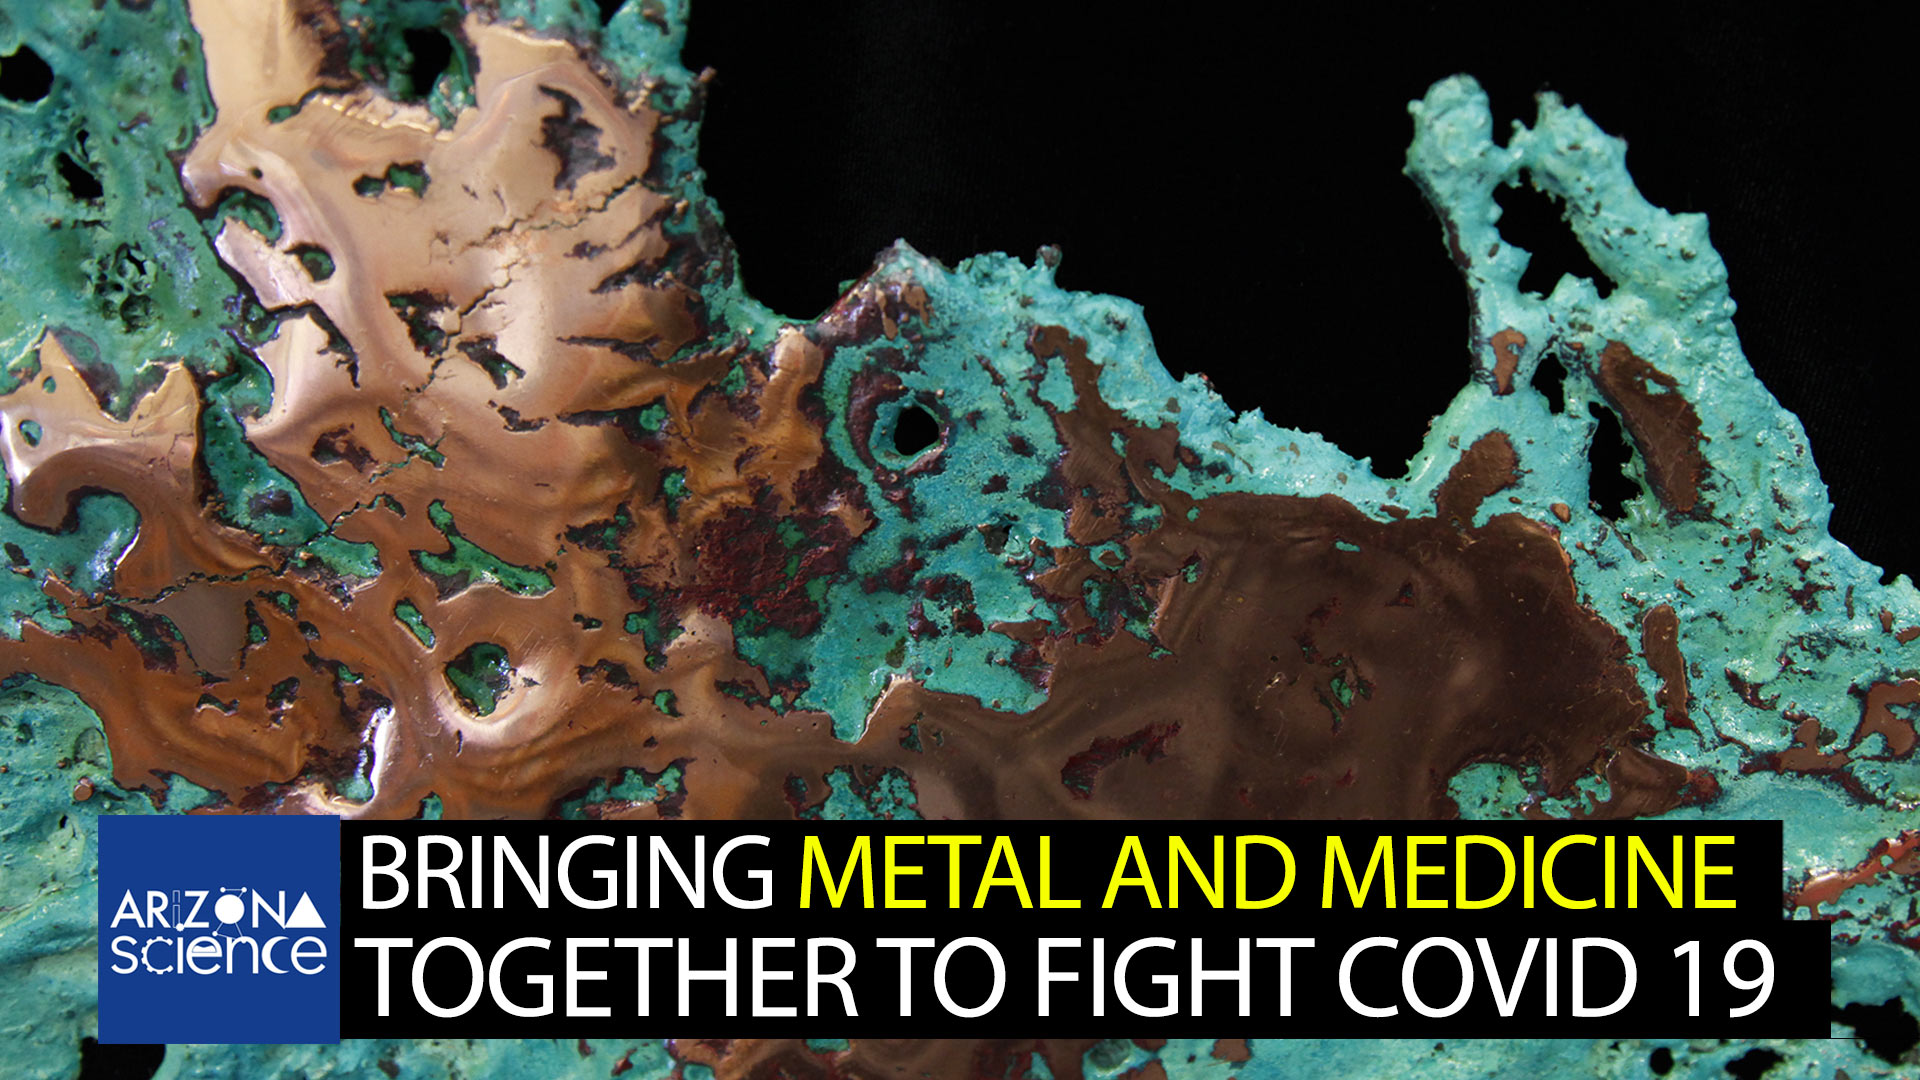 Episode 233: Bringing metal and medicine together to fight COVID-19